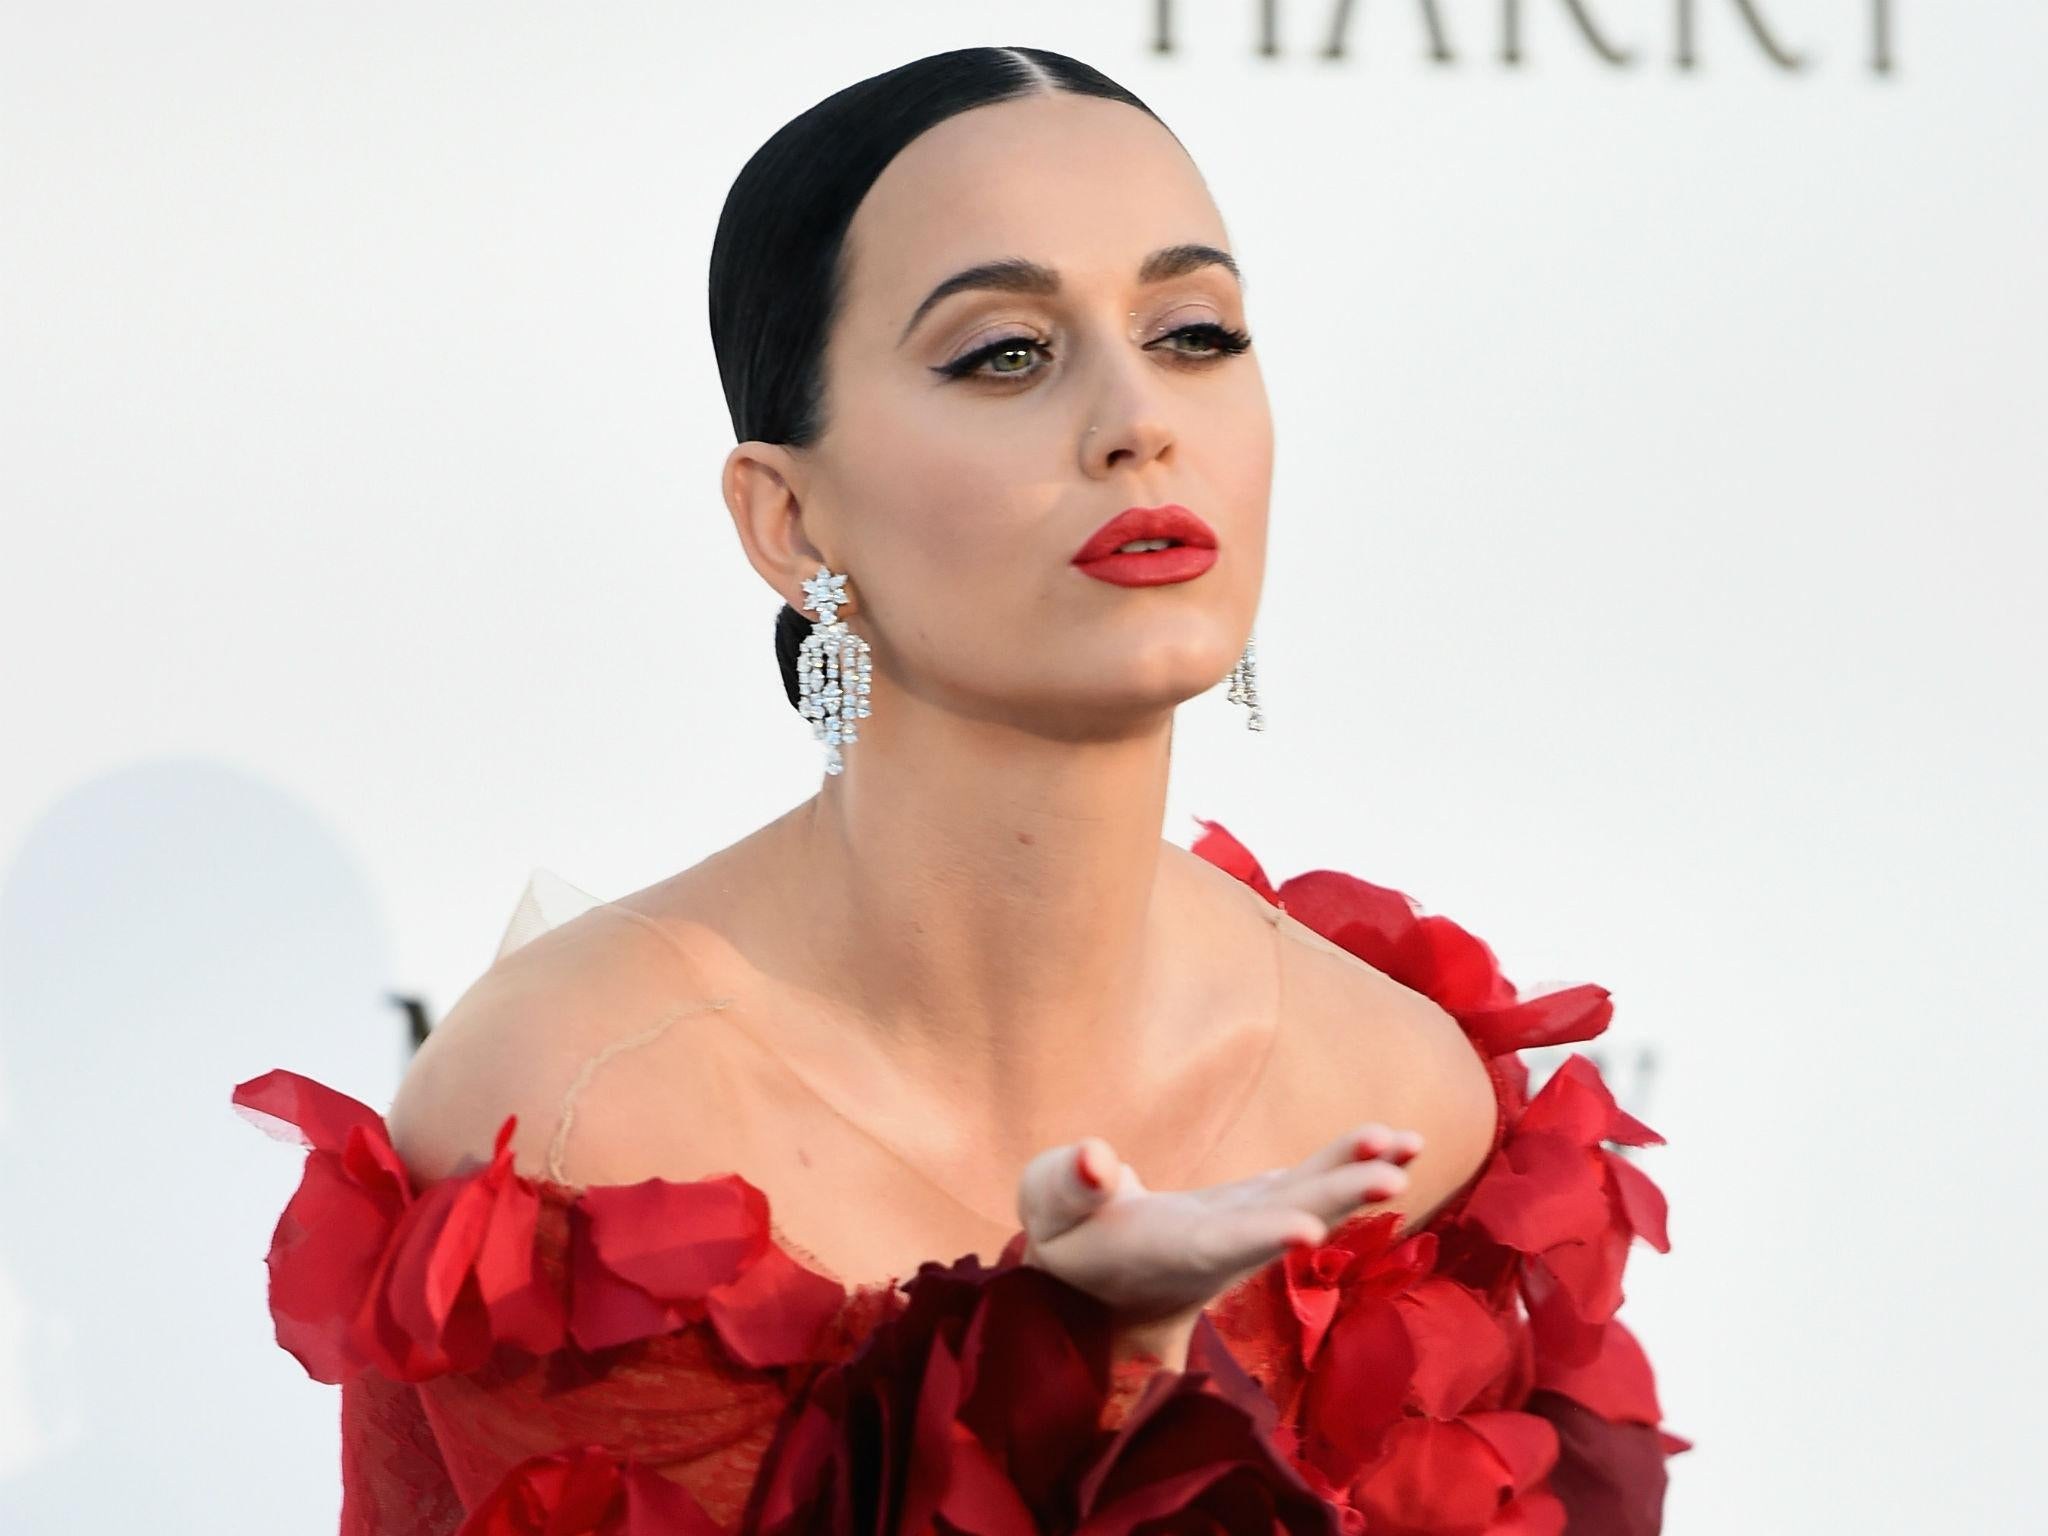 Katy Perry uses her 93 million Twitter followers to mock ... Katy Perry